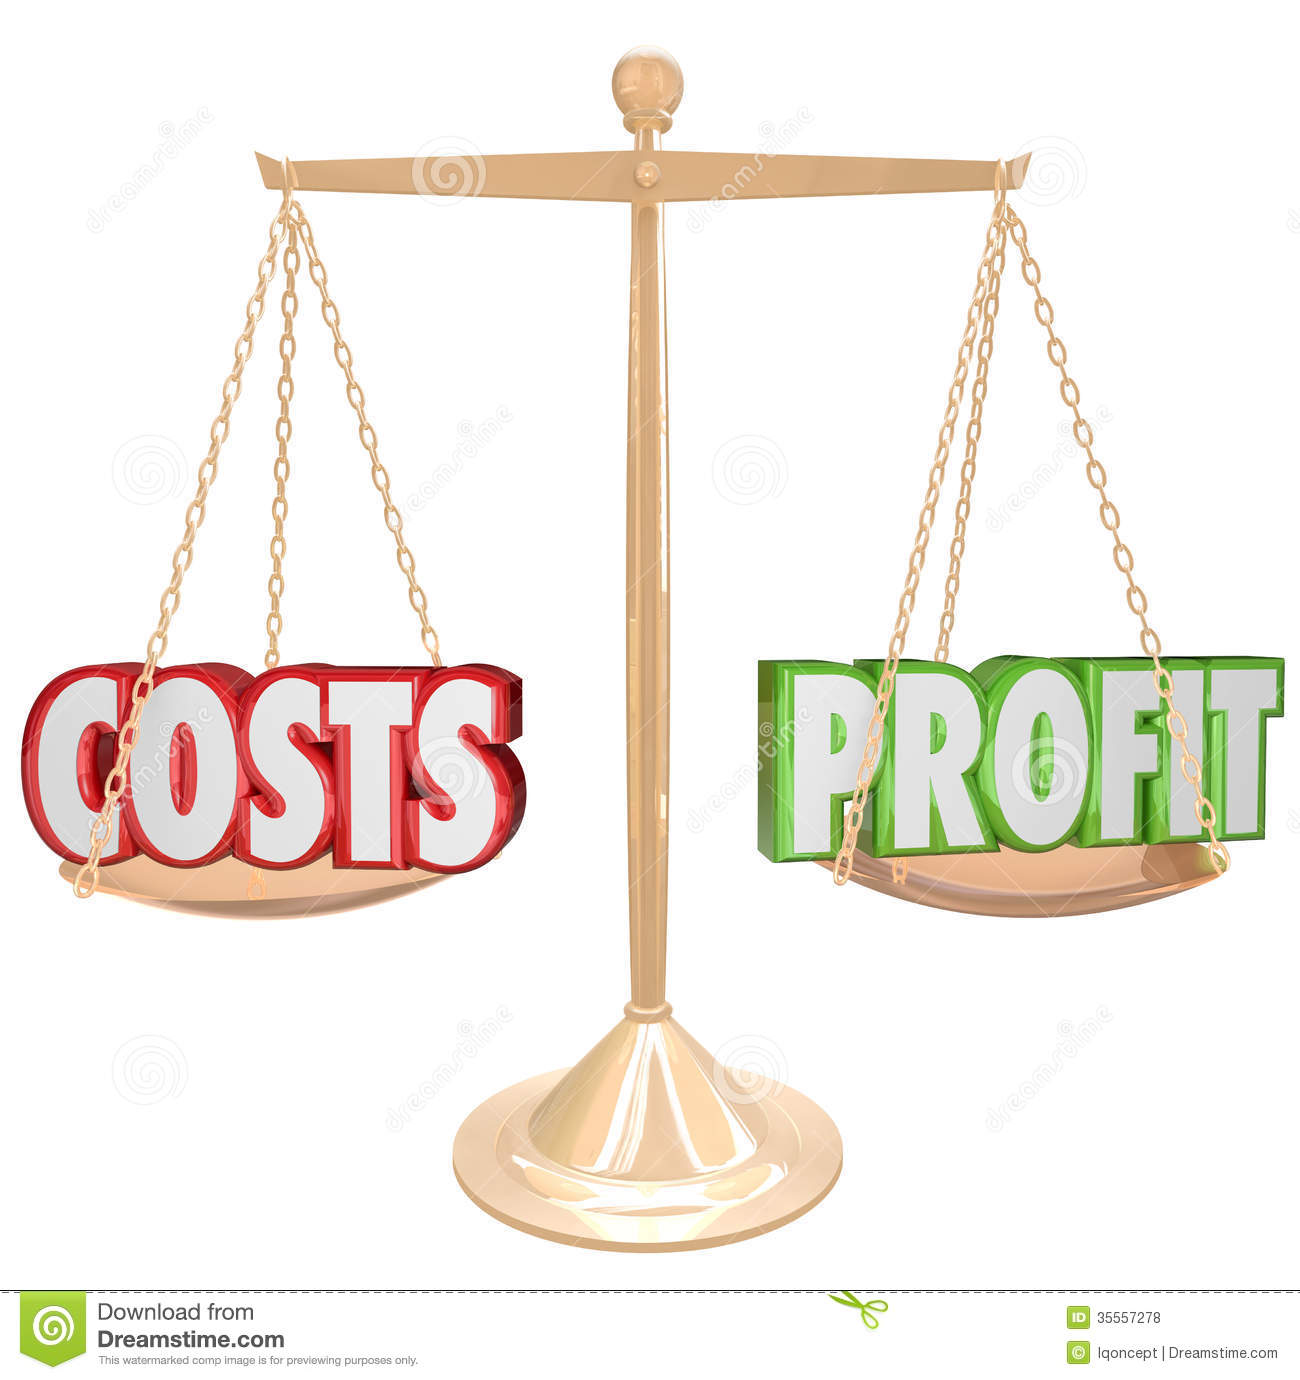 Costs Vs Profit Gold Balance Weighing Words Royalty Free Stock Photos ...